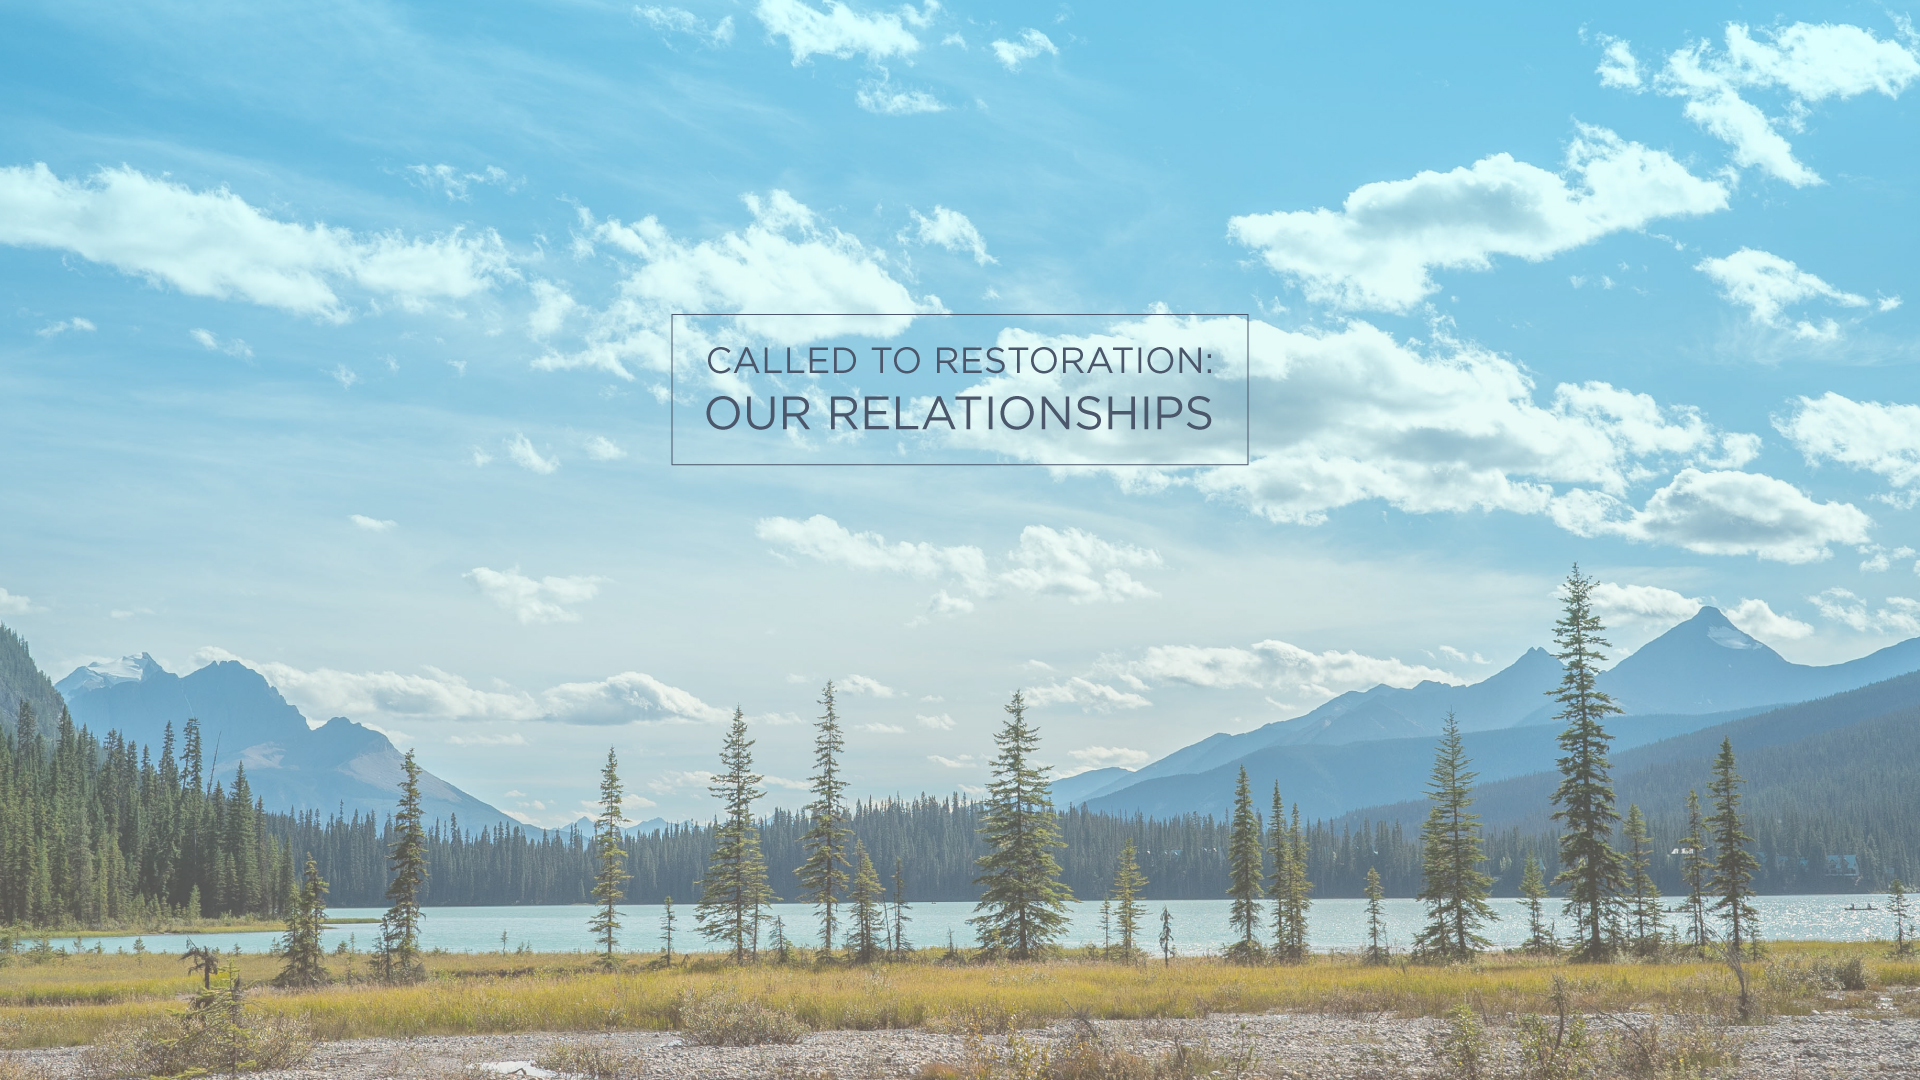 Called To Restoration, Our Relationships